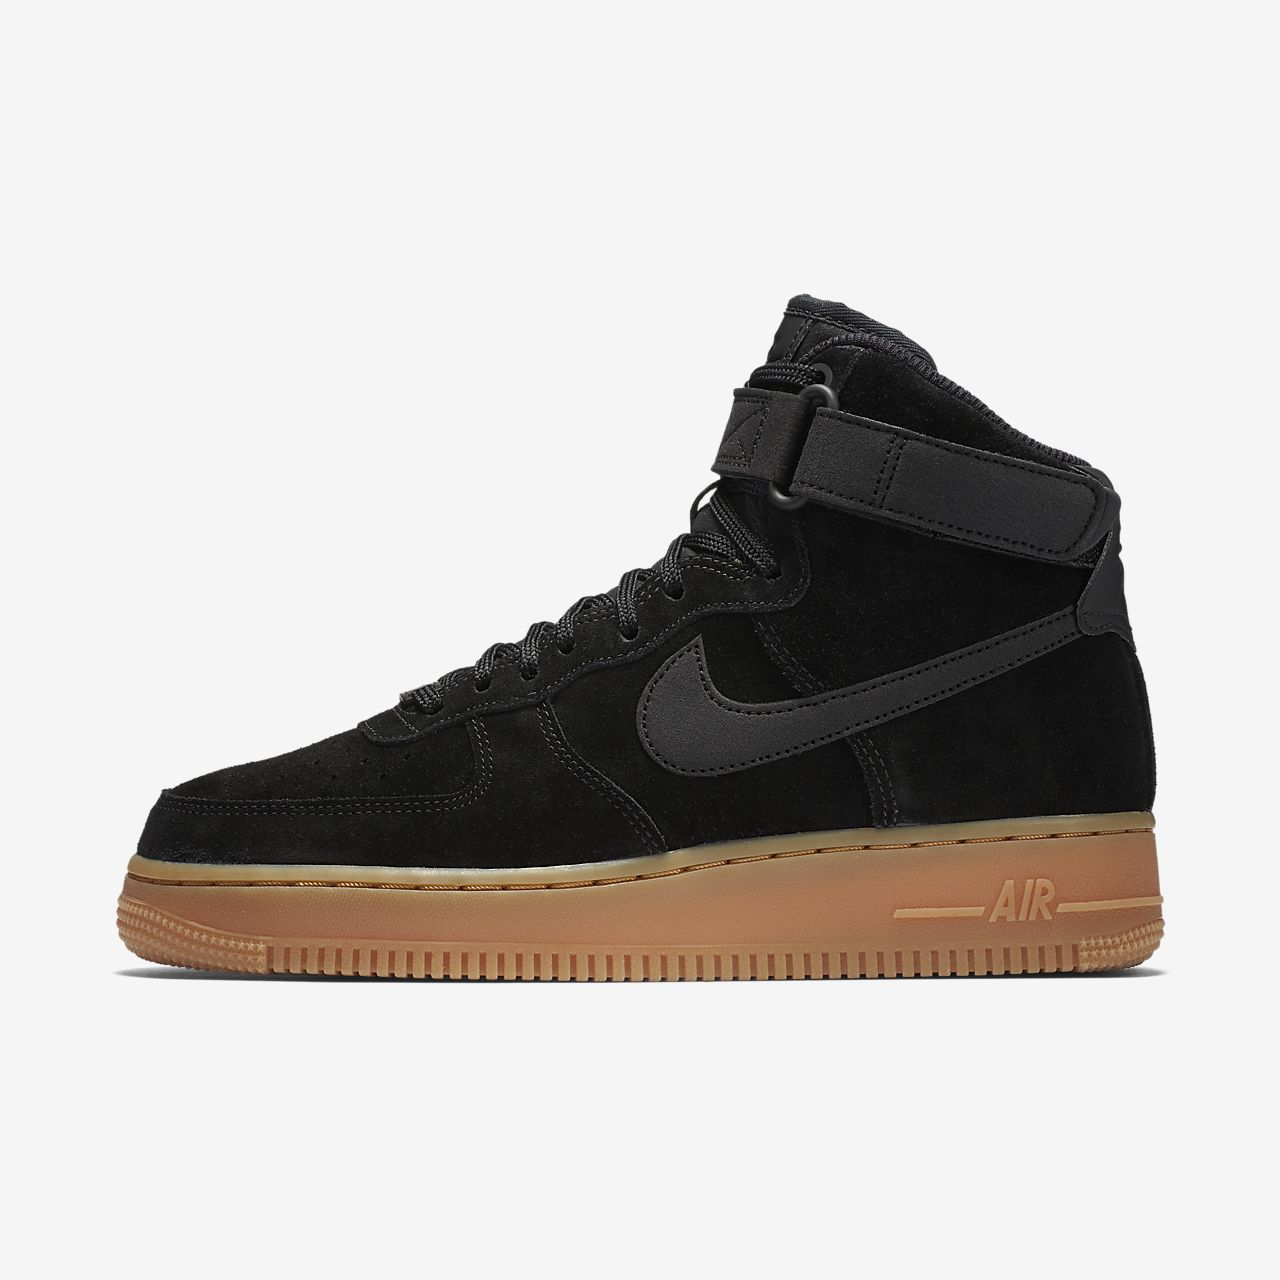 nike nike air force 1 nz